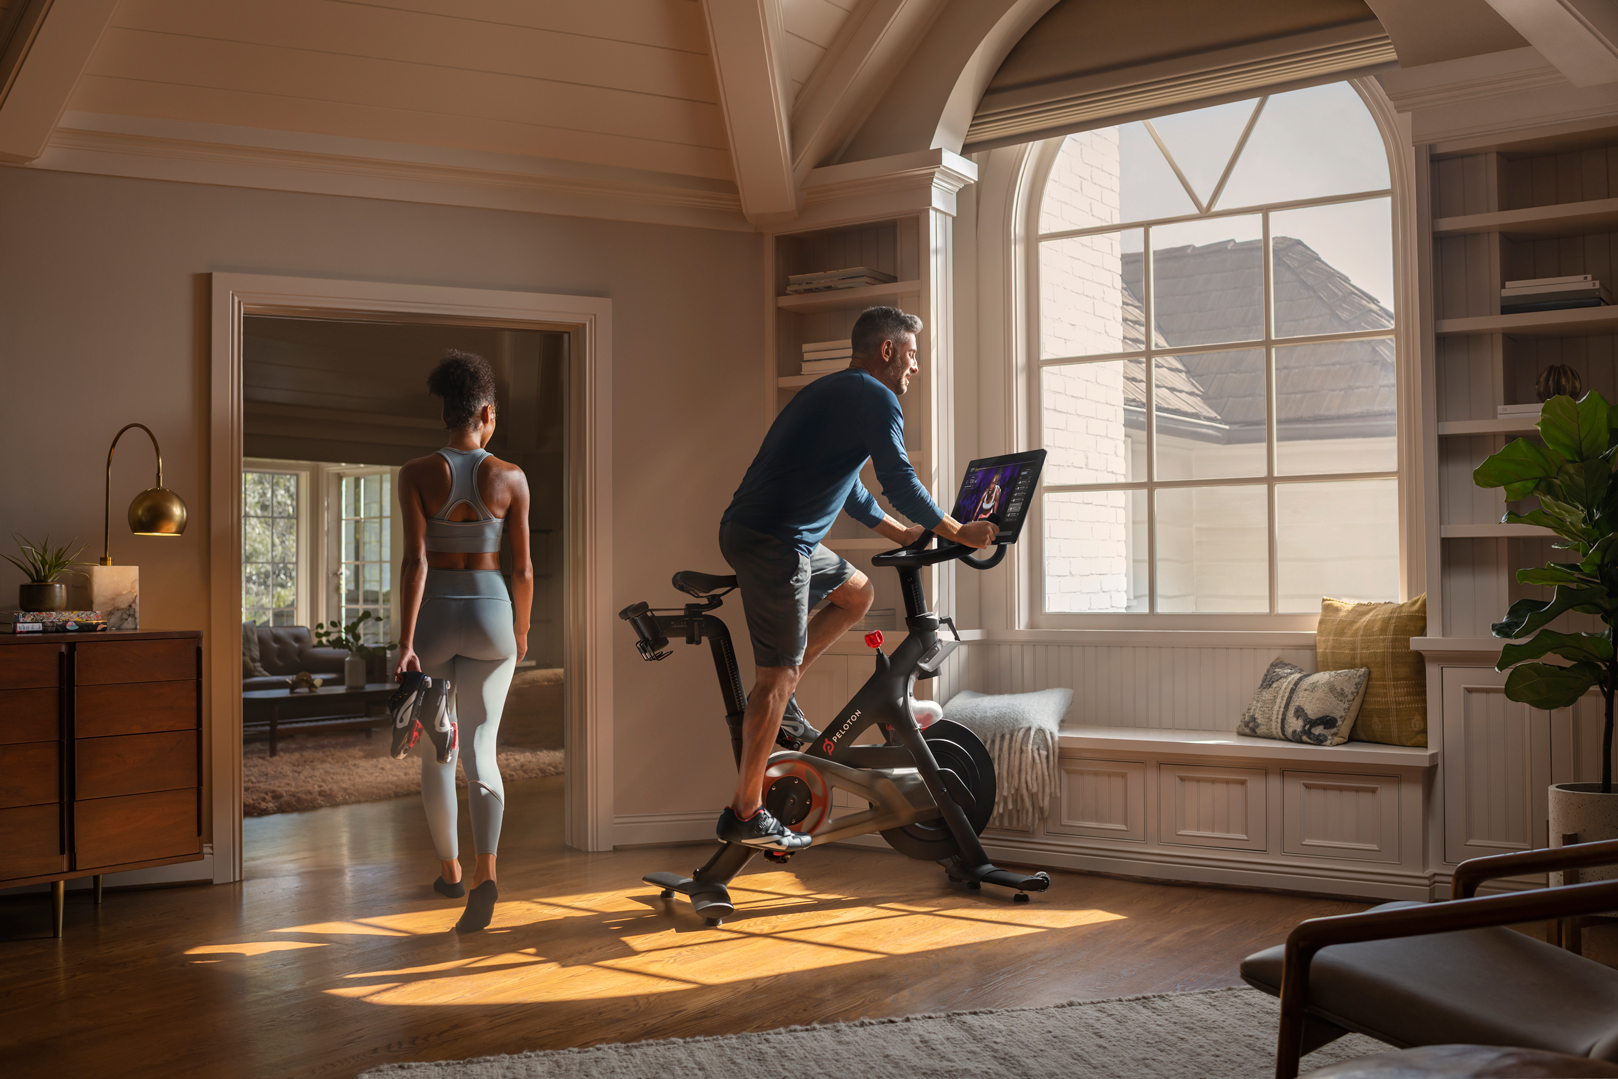 Owners of Spinning to sue Peloton for alleged patent infringement